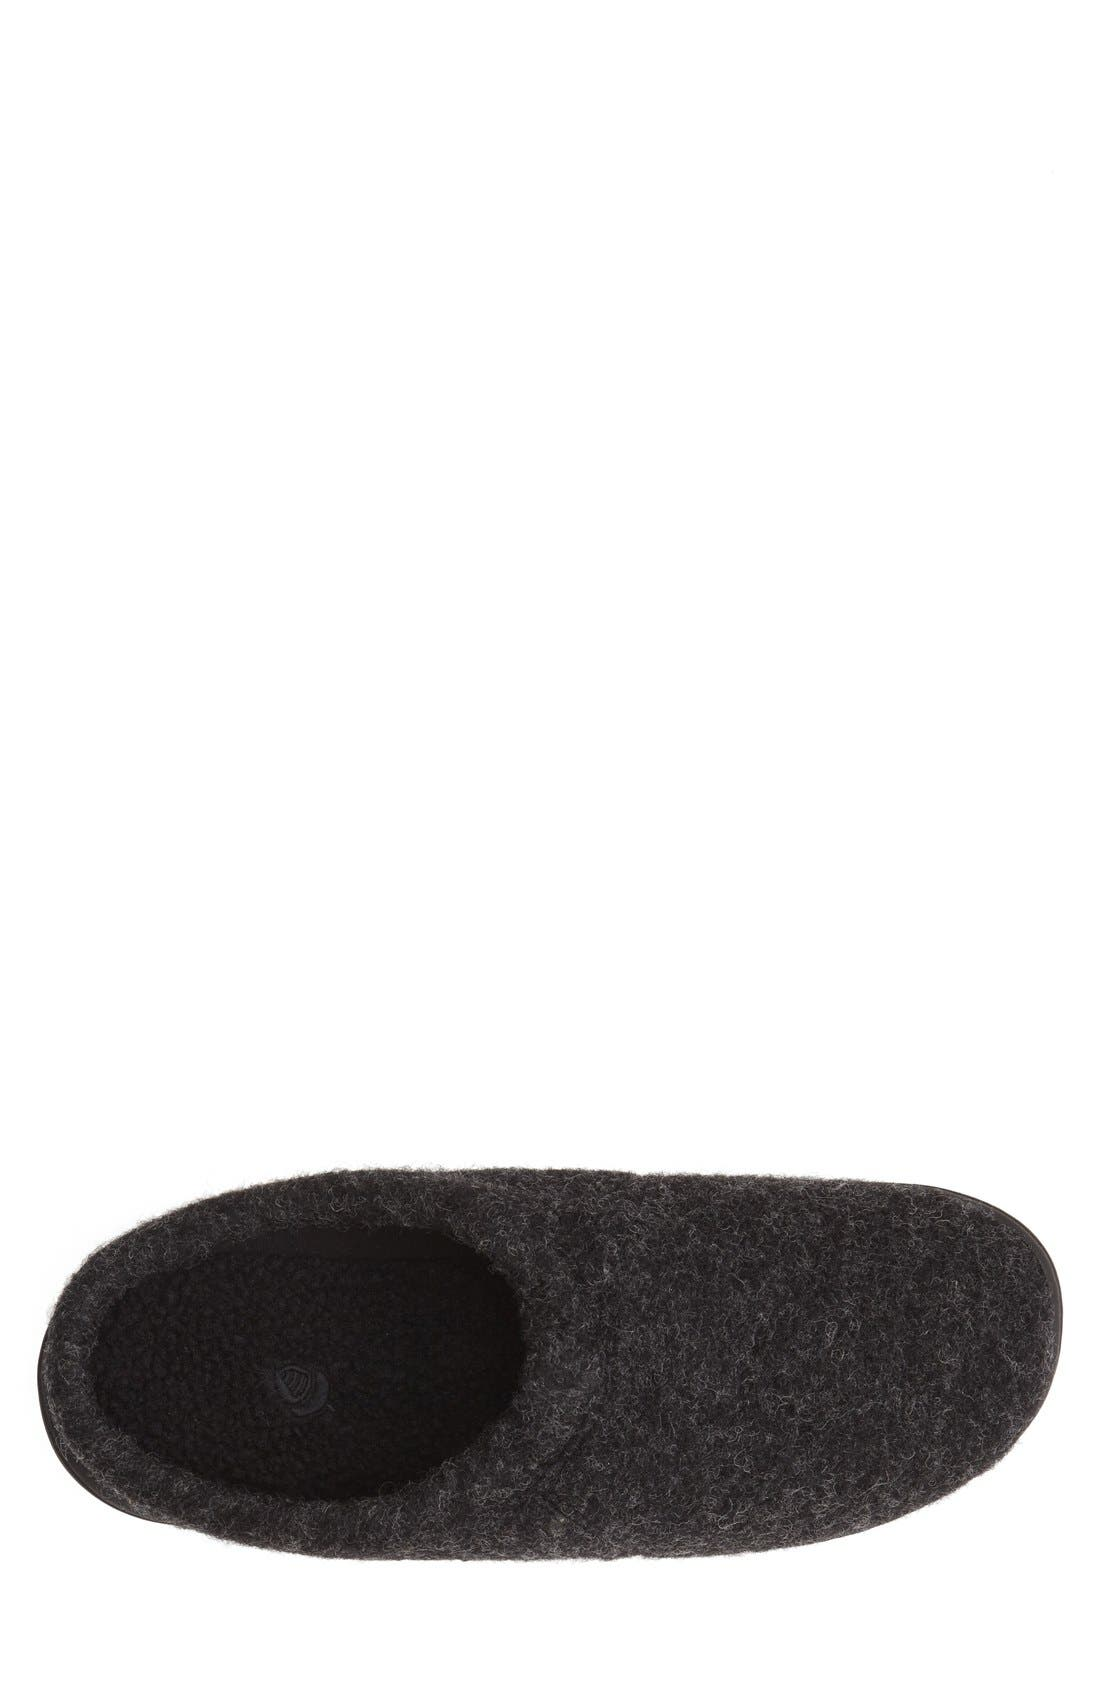 'Digby' Slipper,                             Alternate thumbnail 29, color,